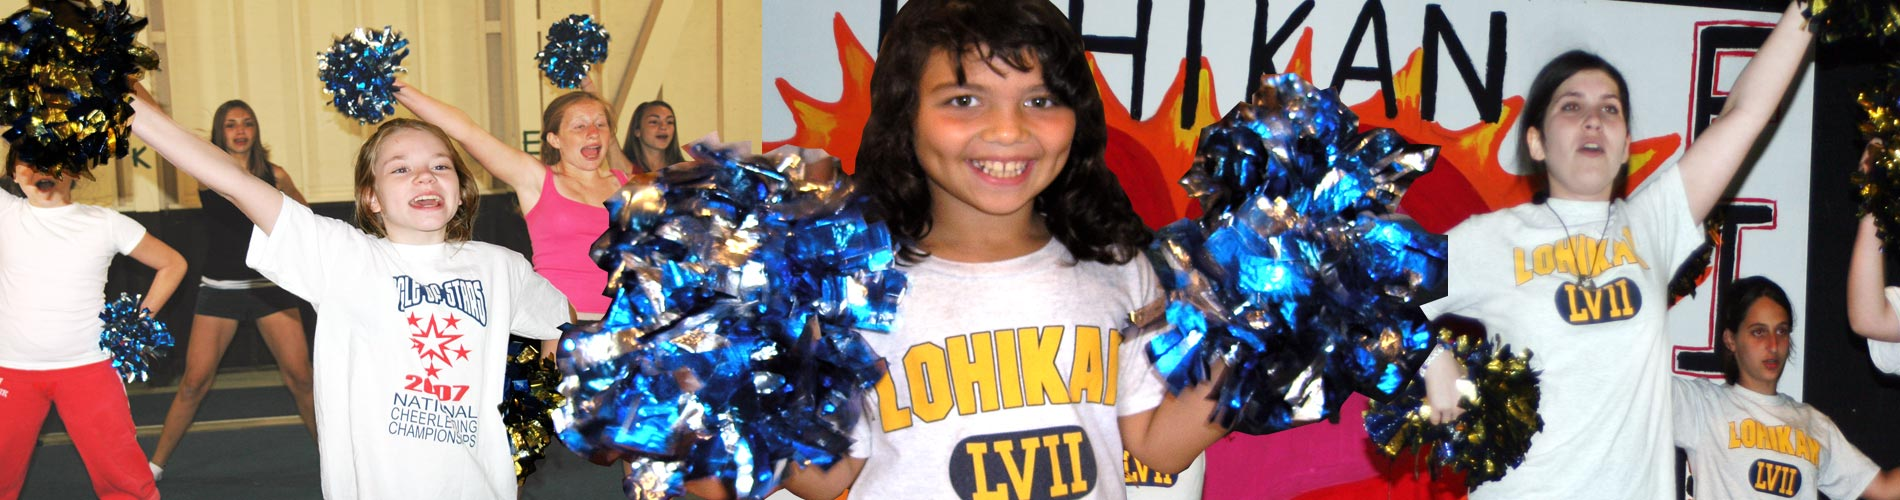 Cheerleading at Camp Lohikan